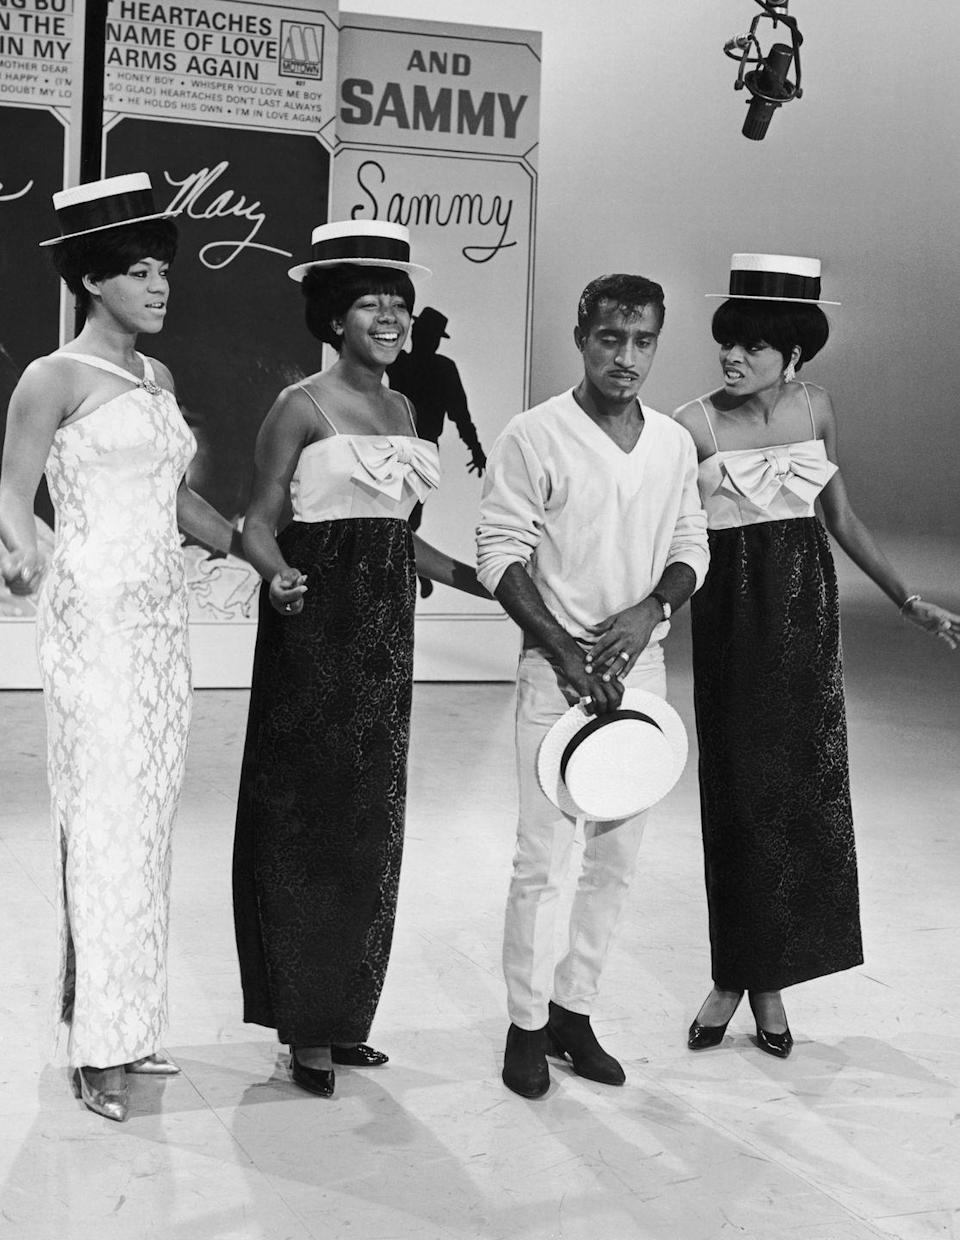 <p>Around this time, the Supremes began touring and making appearances on television shows. Here, they perform with Sammy Davis Jr. on a TV special. </p>